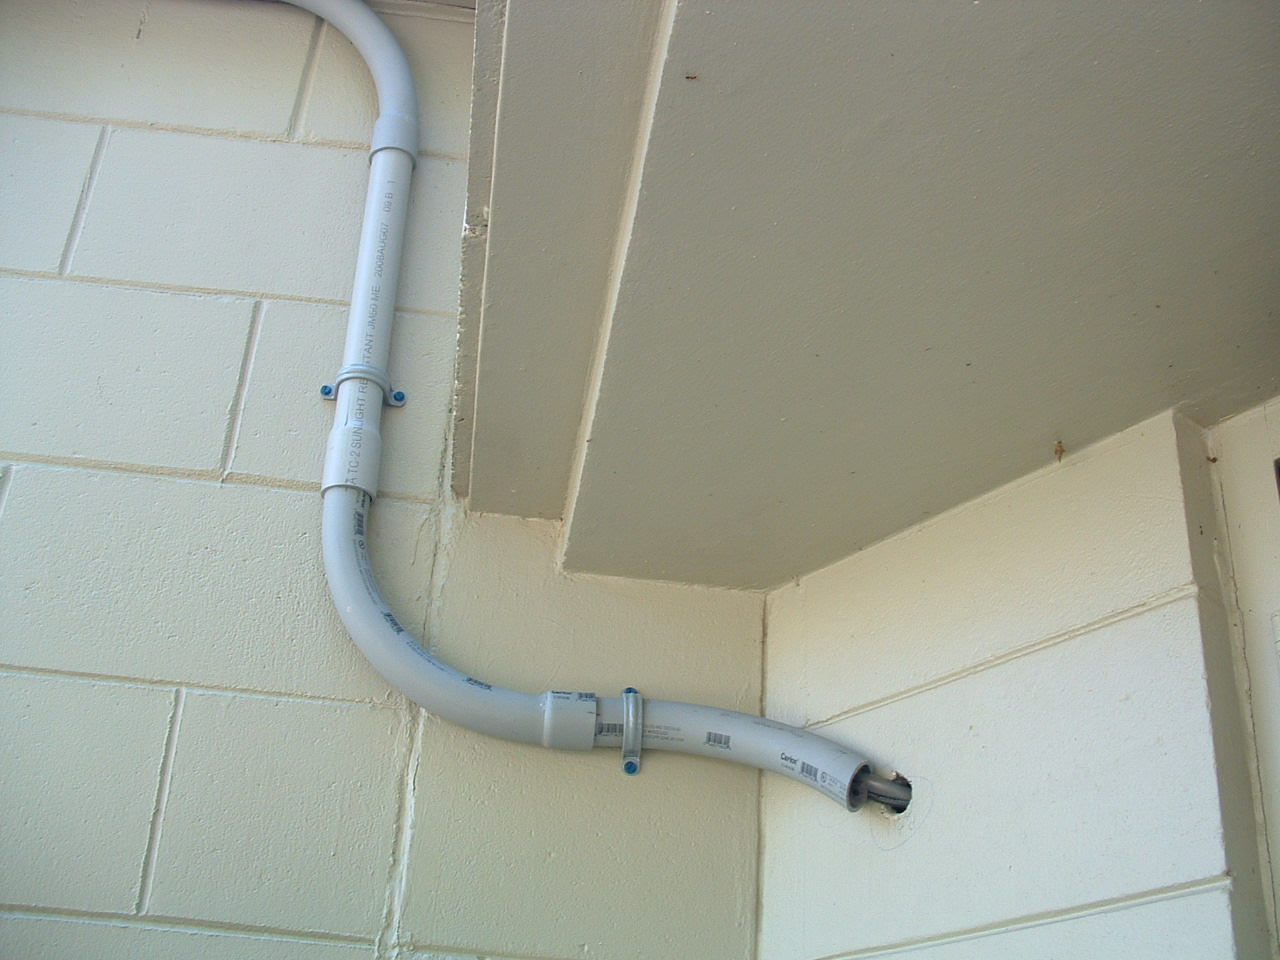 Figure 30 The Control Cable Conduits Where They Enter The Wall Of